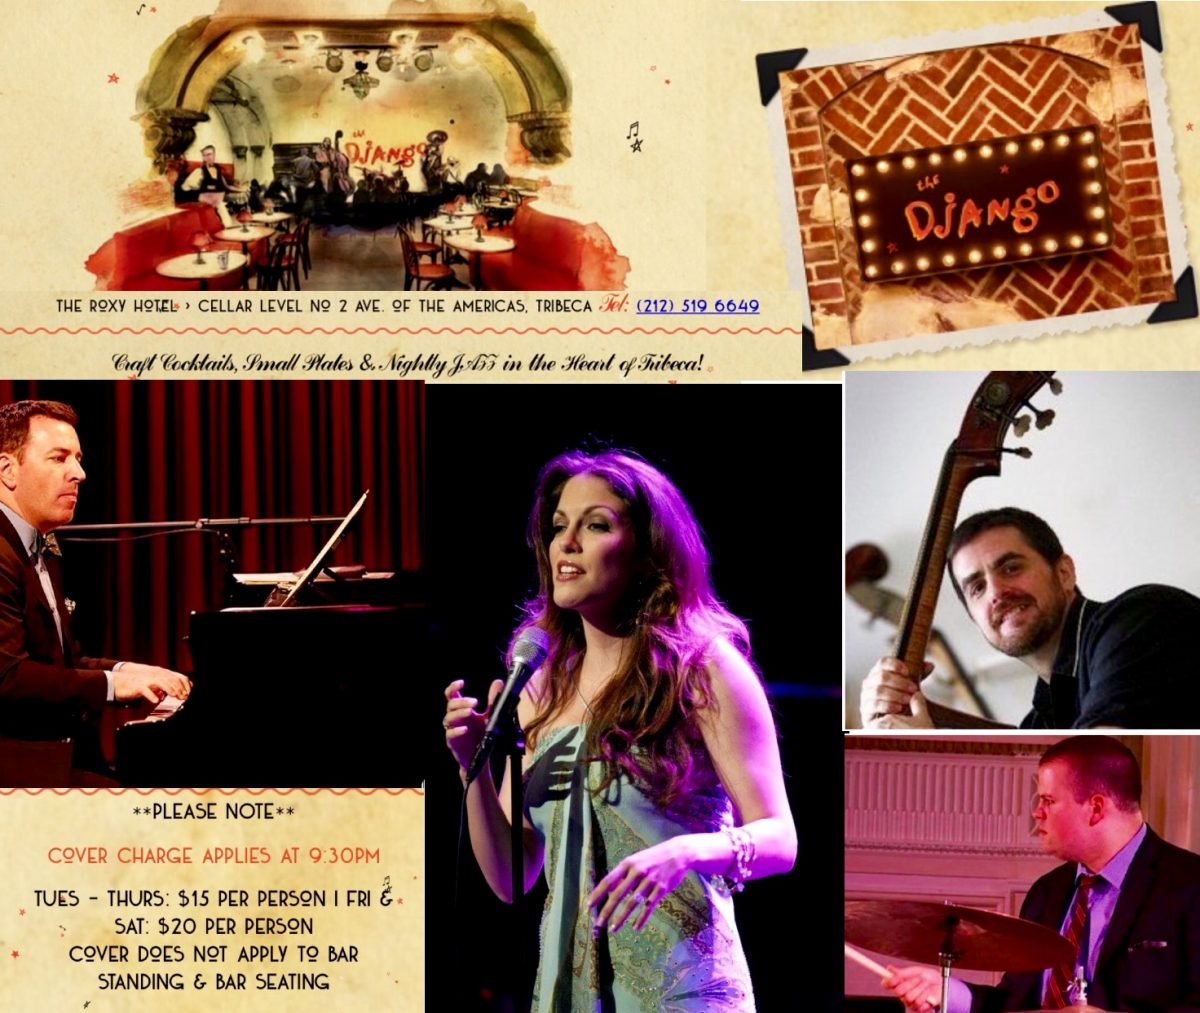 Hilary Kole & her Band (Matt Fries on piano, Paul Gill on Bass, Aaron Kimmel on drums) perform at The Django at the Roxy Hotel